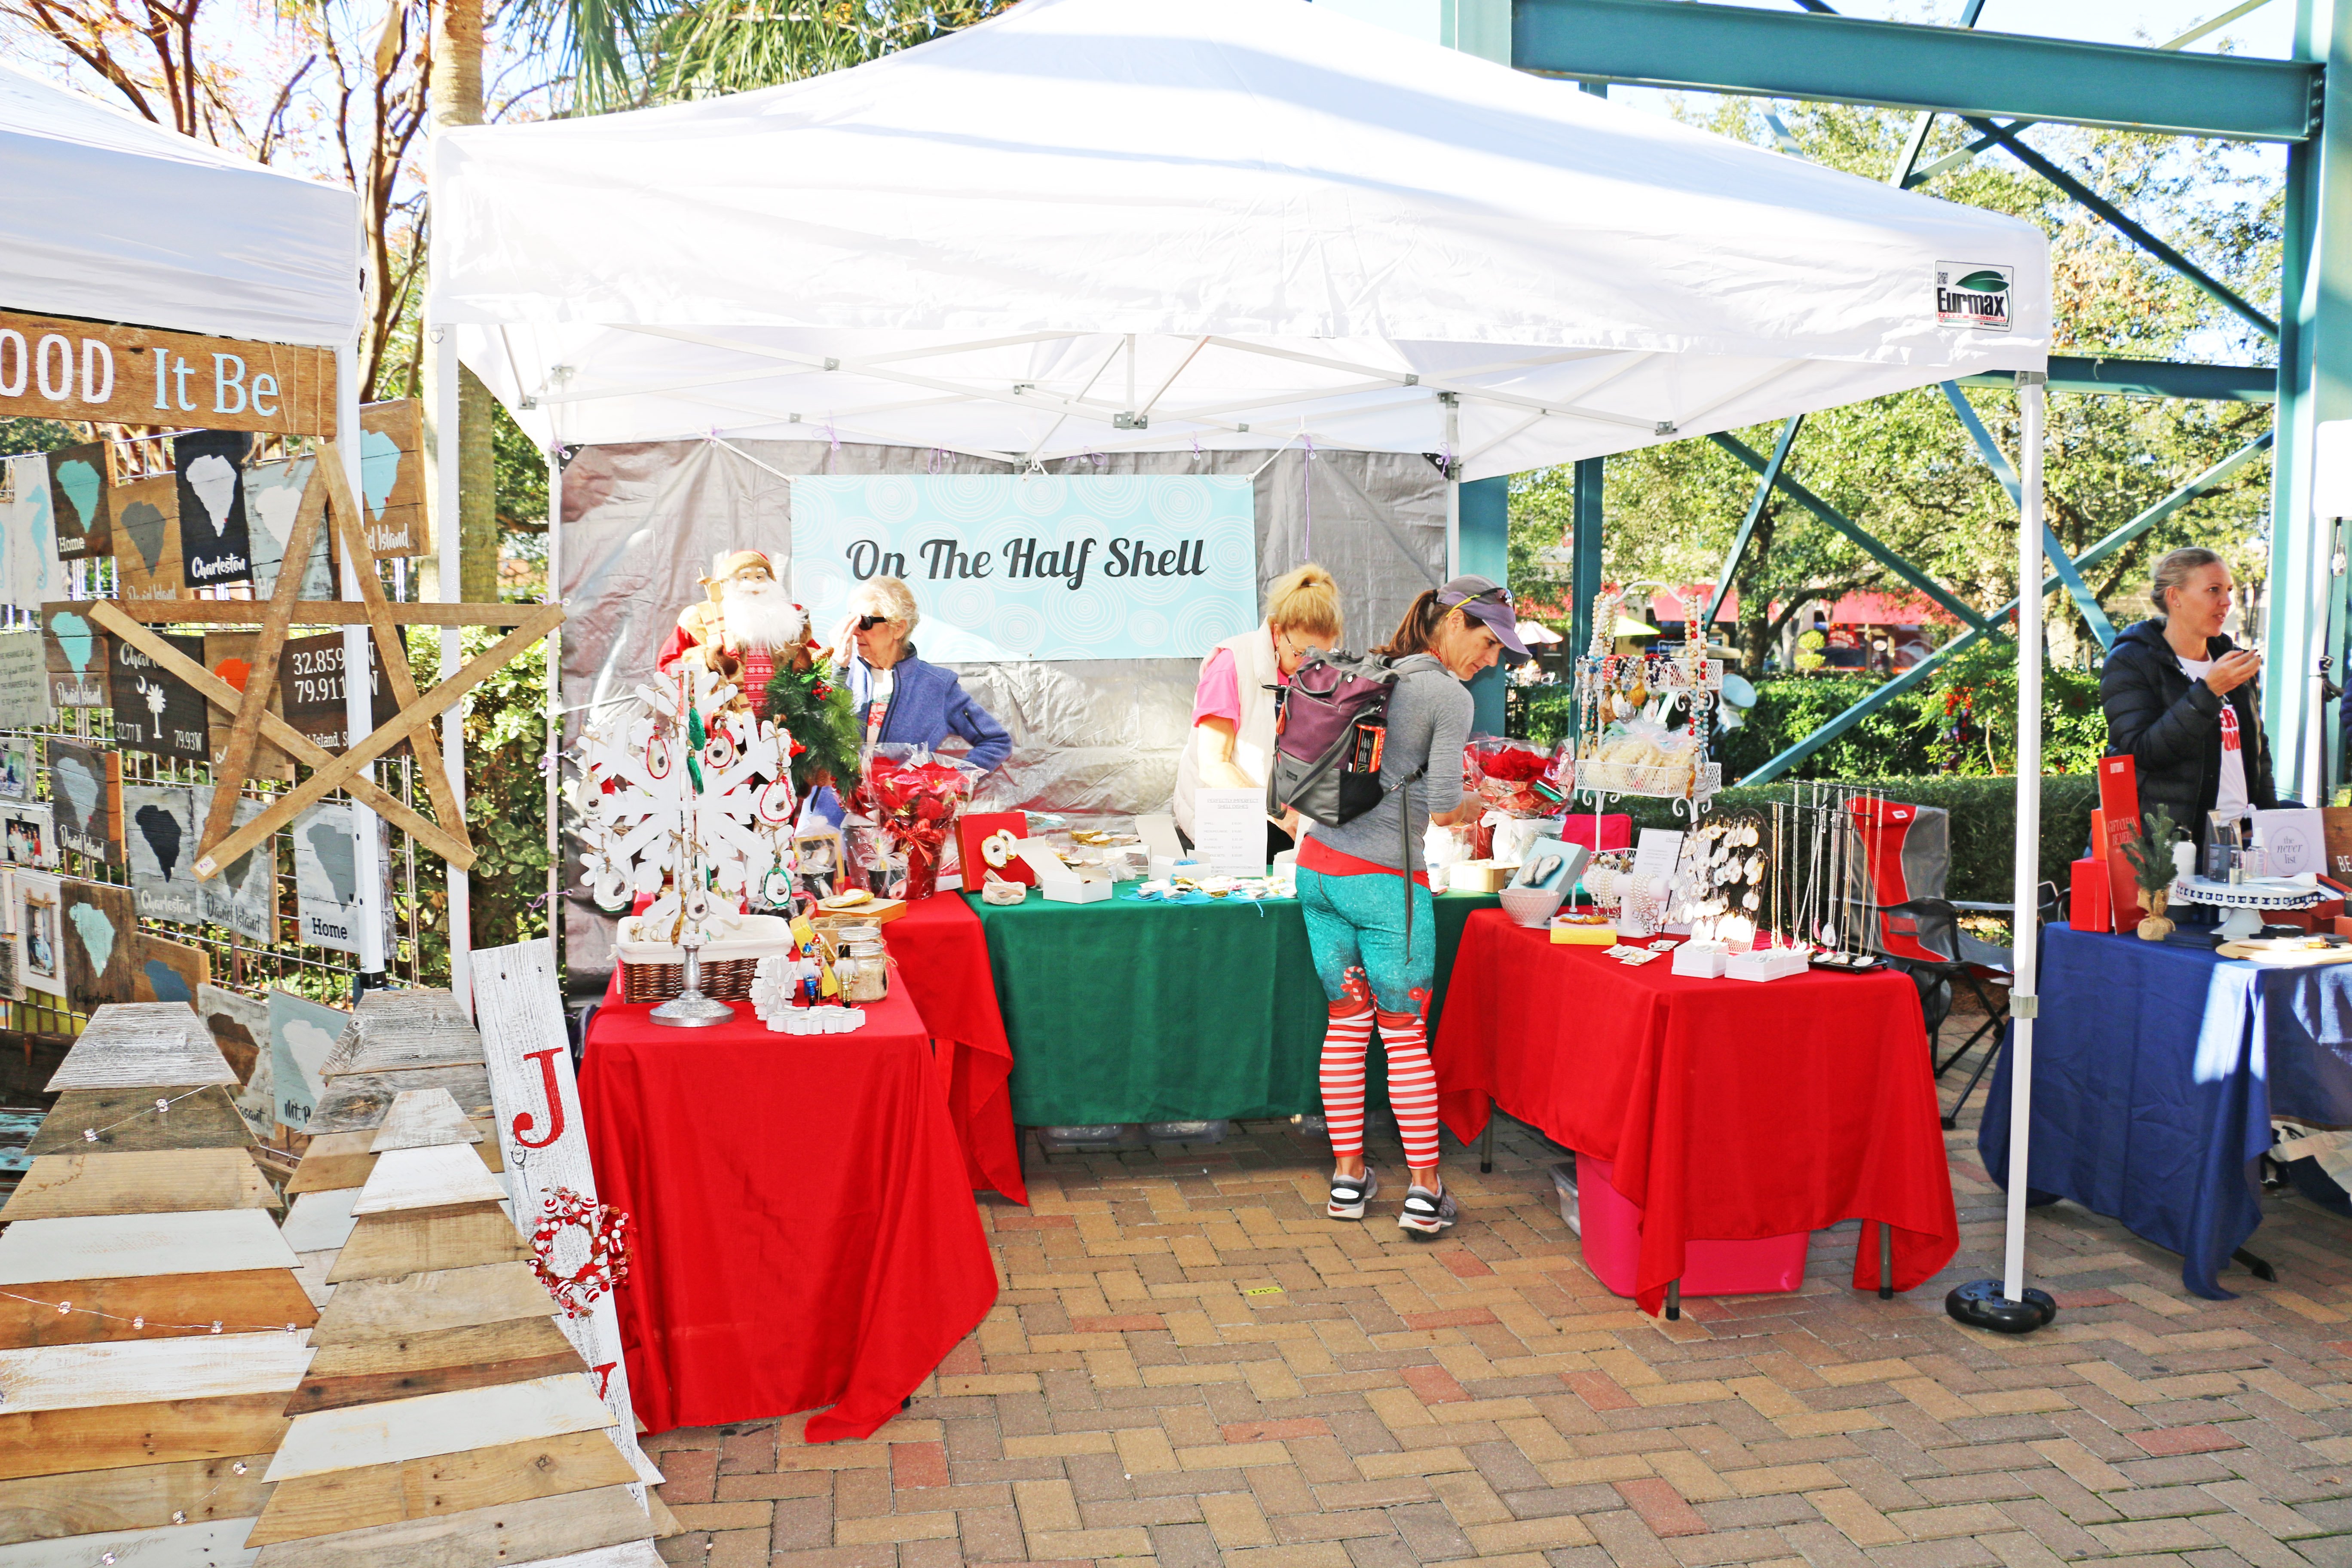 Vendors offered a great selection of gifts and holiday items for those attending the event at Volvo Car Stadium on Daniel Island.